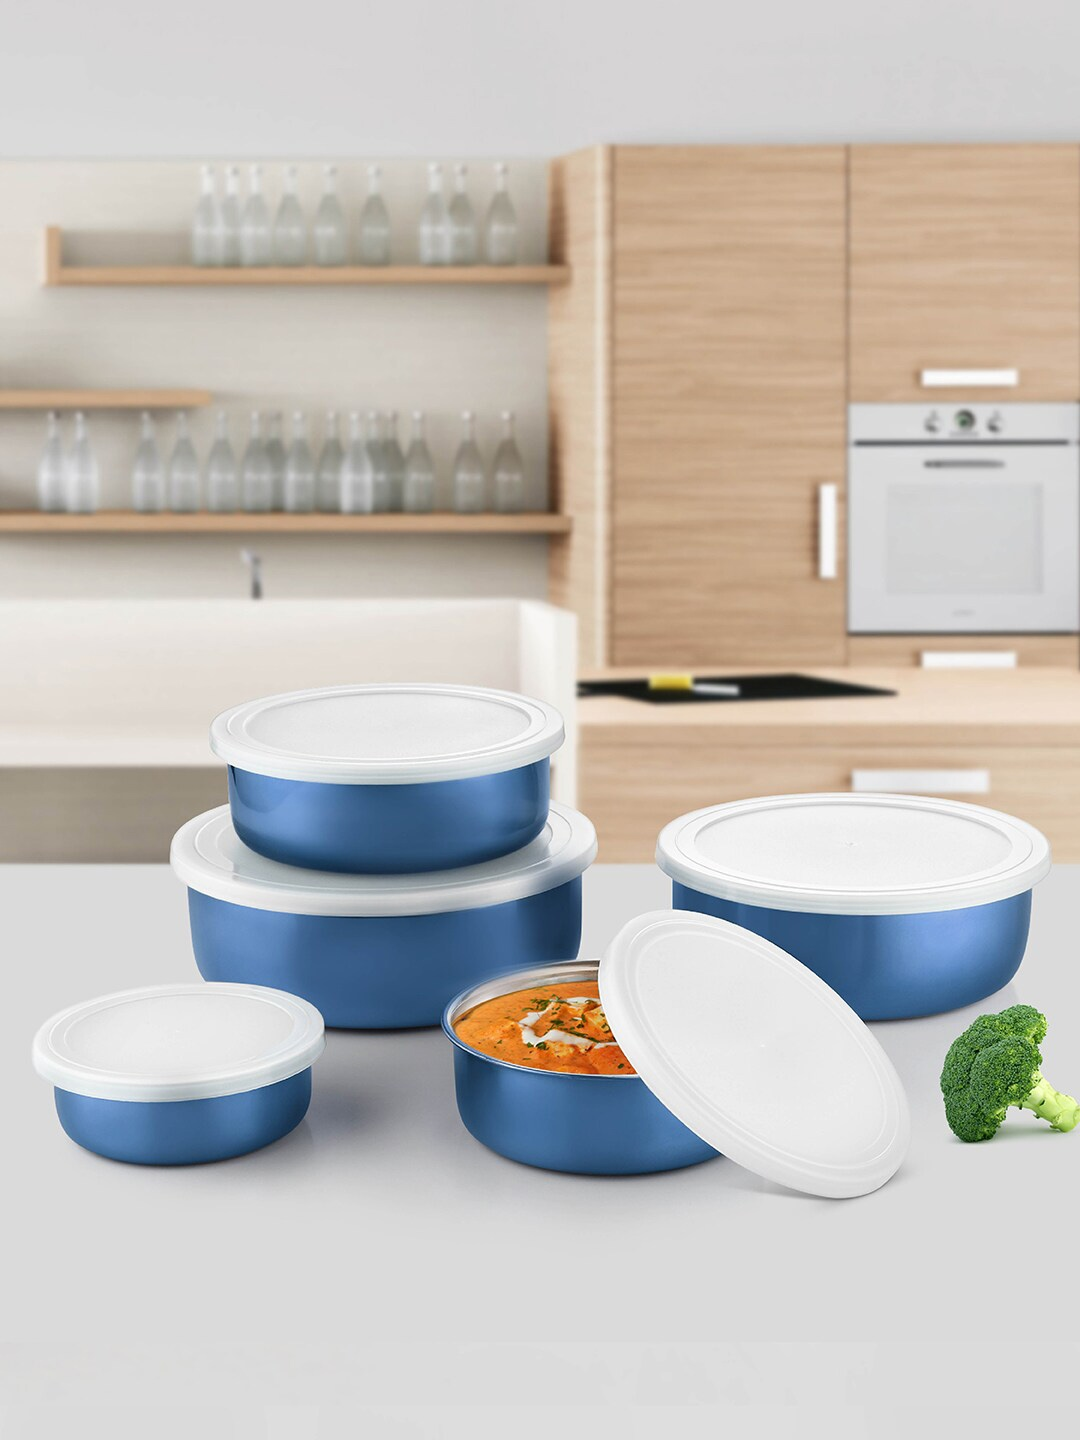 Jensons Set Of 5 Blue   White Stainless Steel Food Storage Bowls With Lid